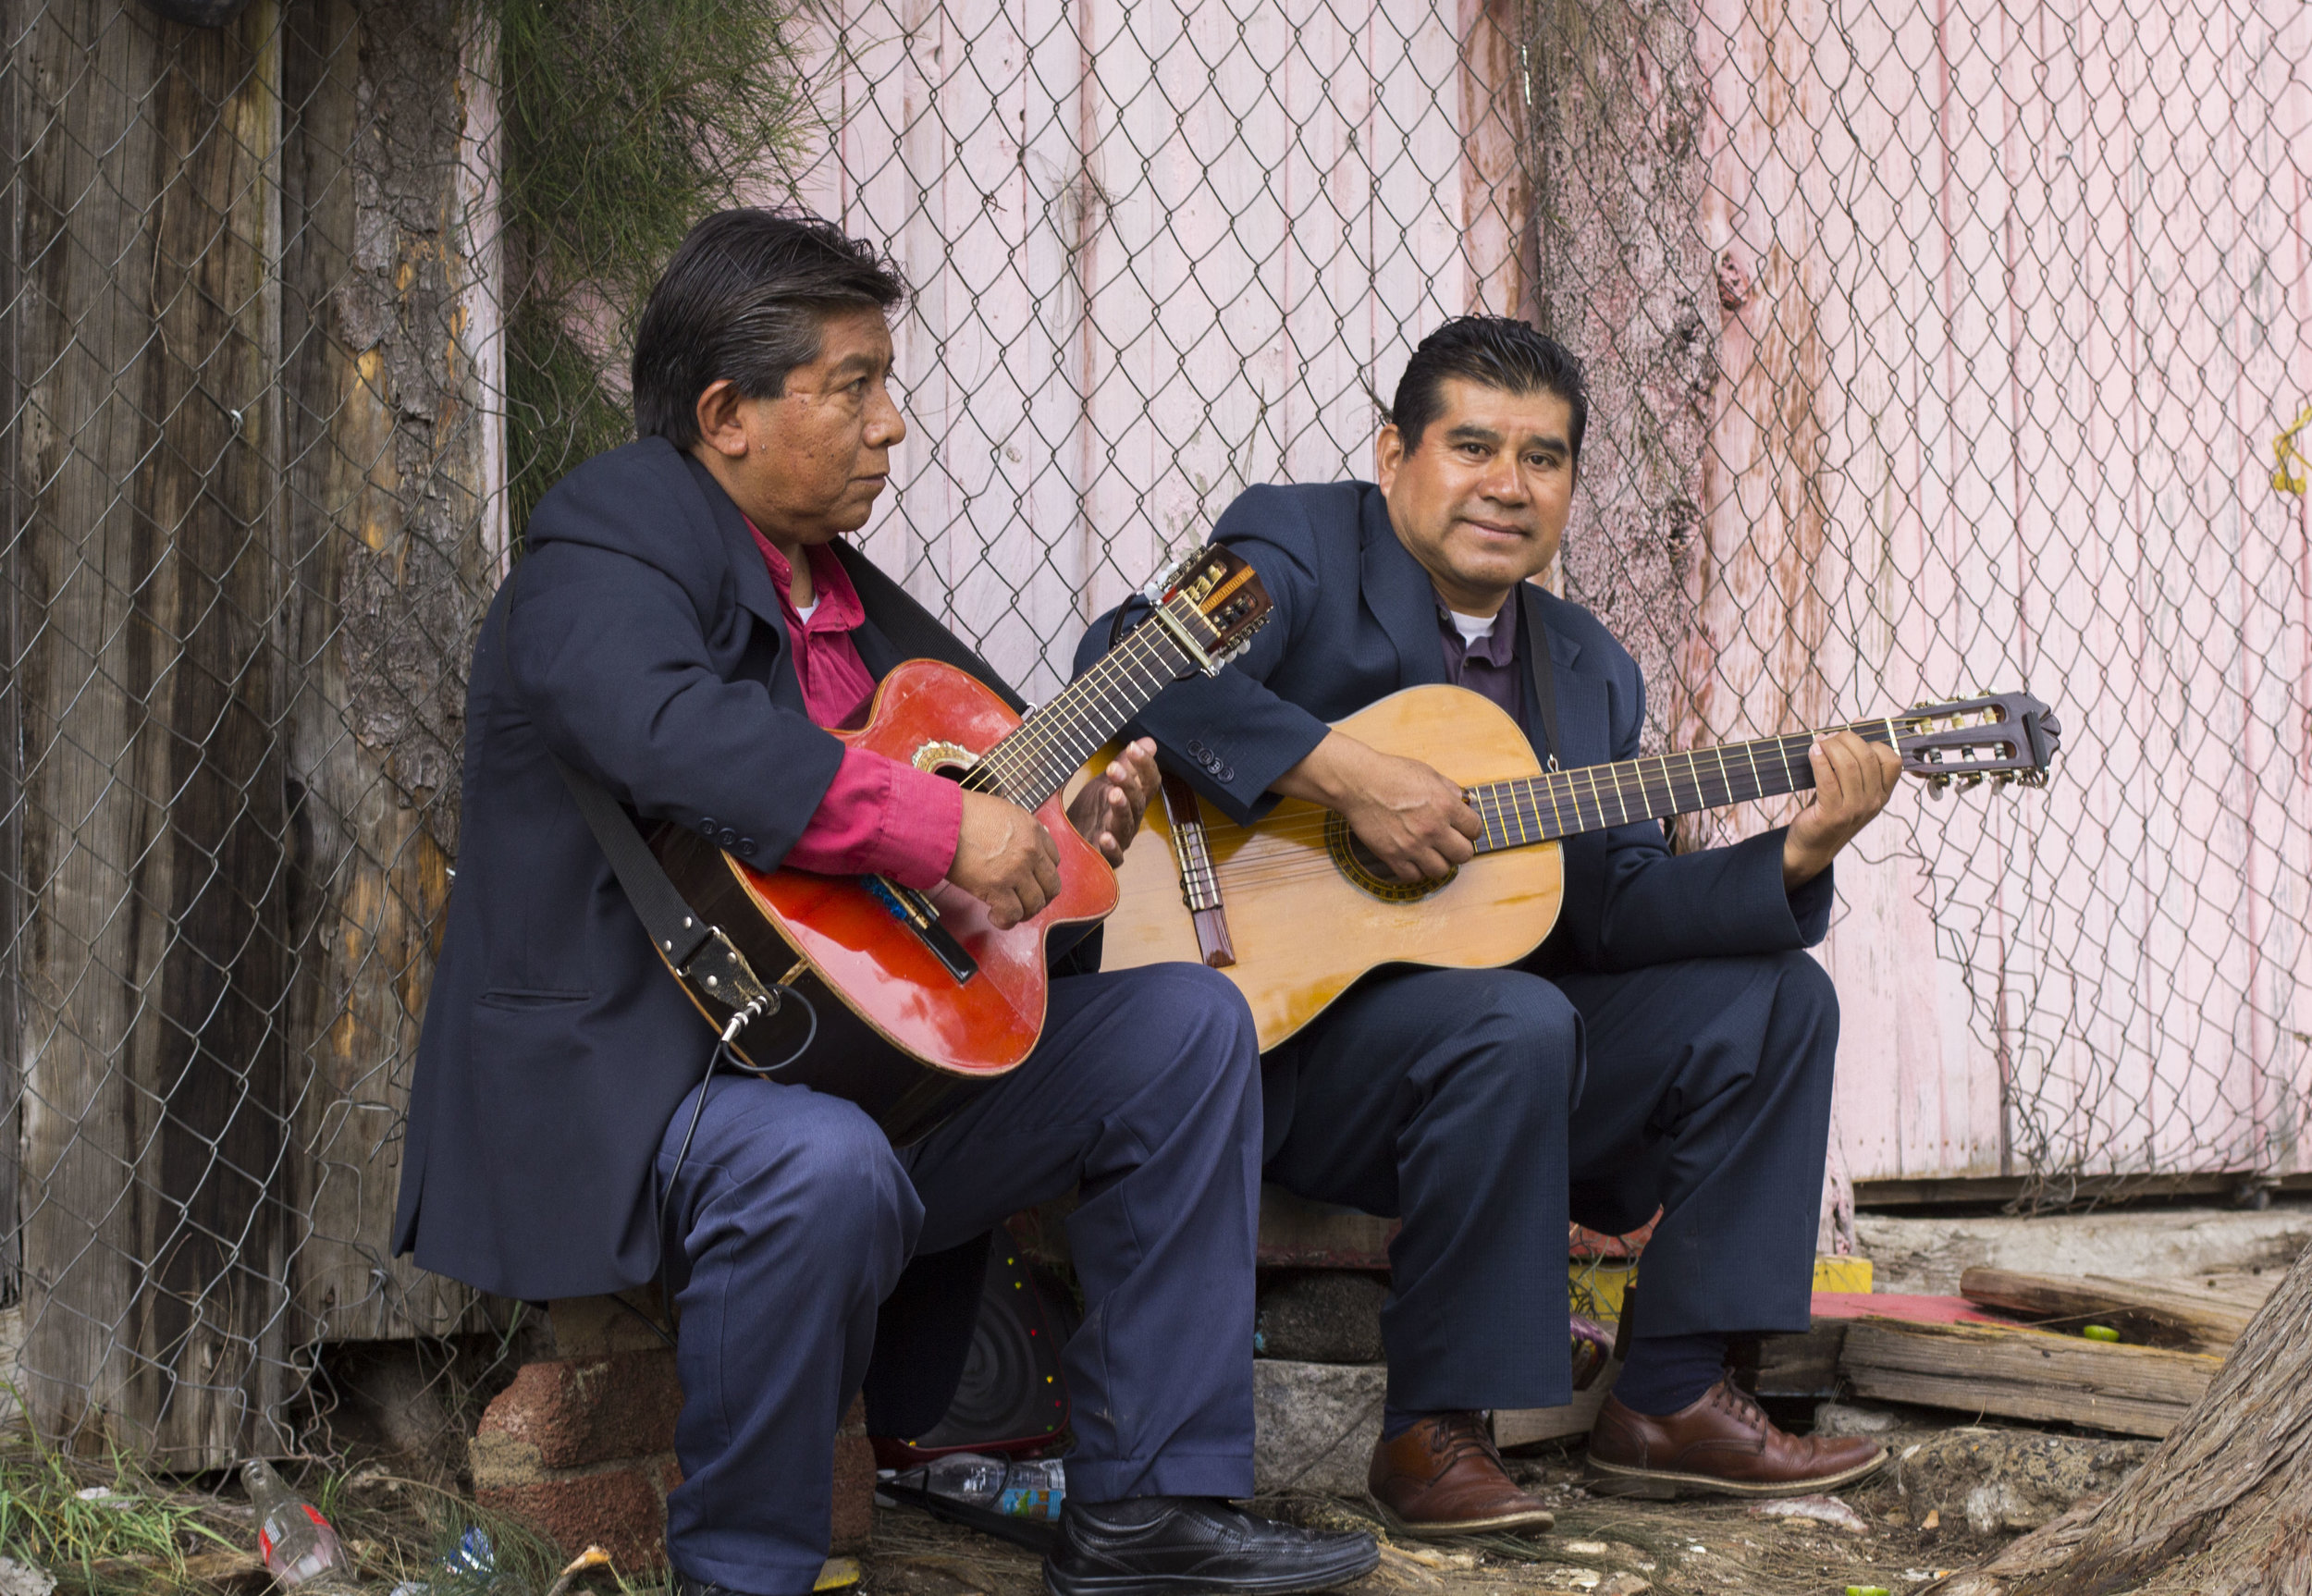 The Guitarist and I Cuidad de Mexico, 2018